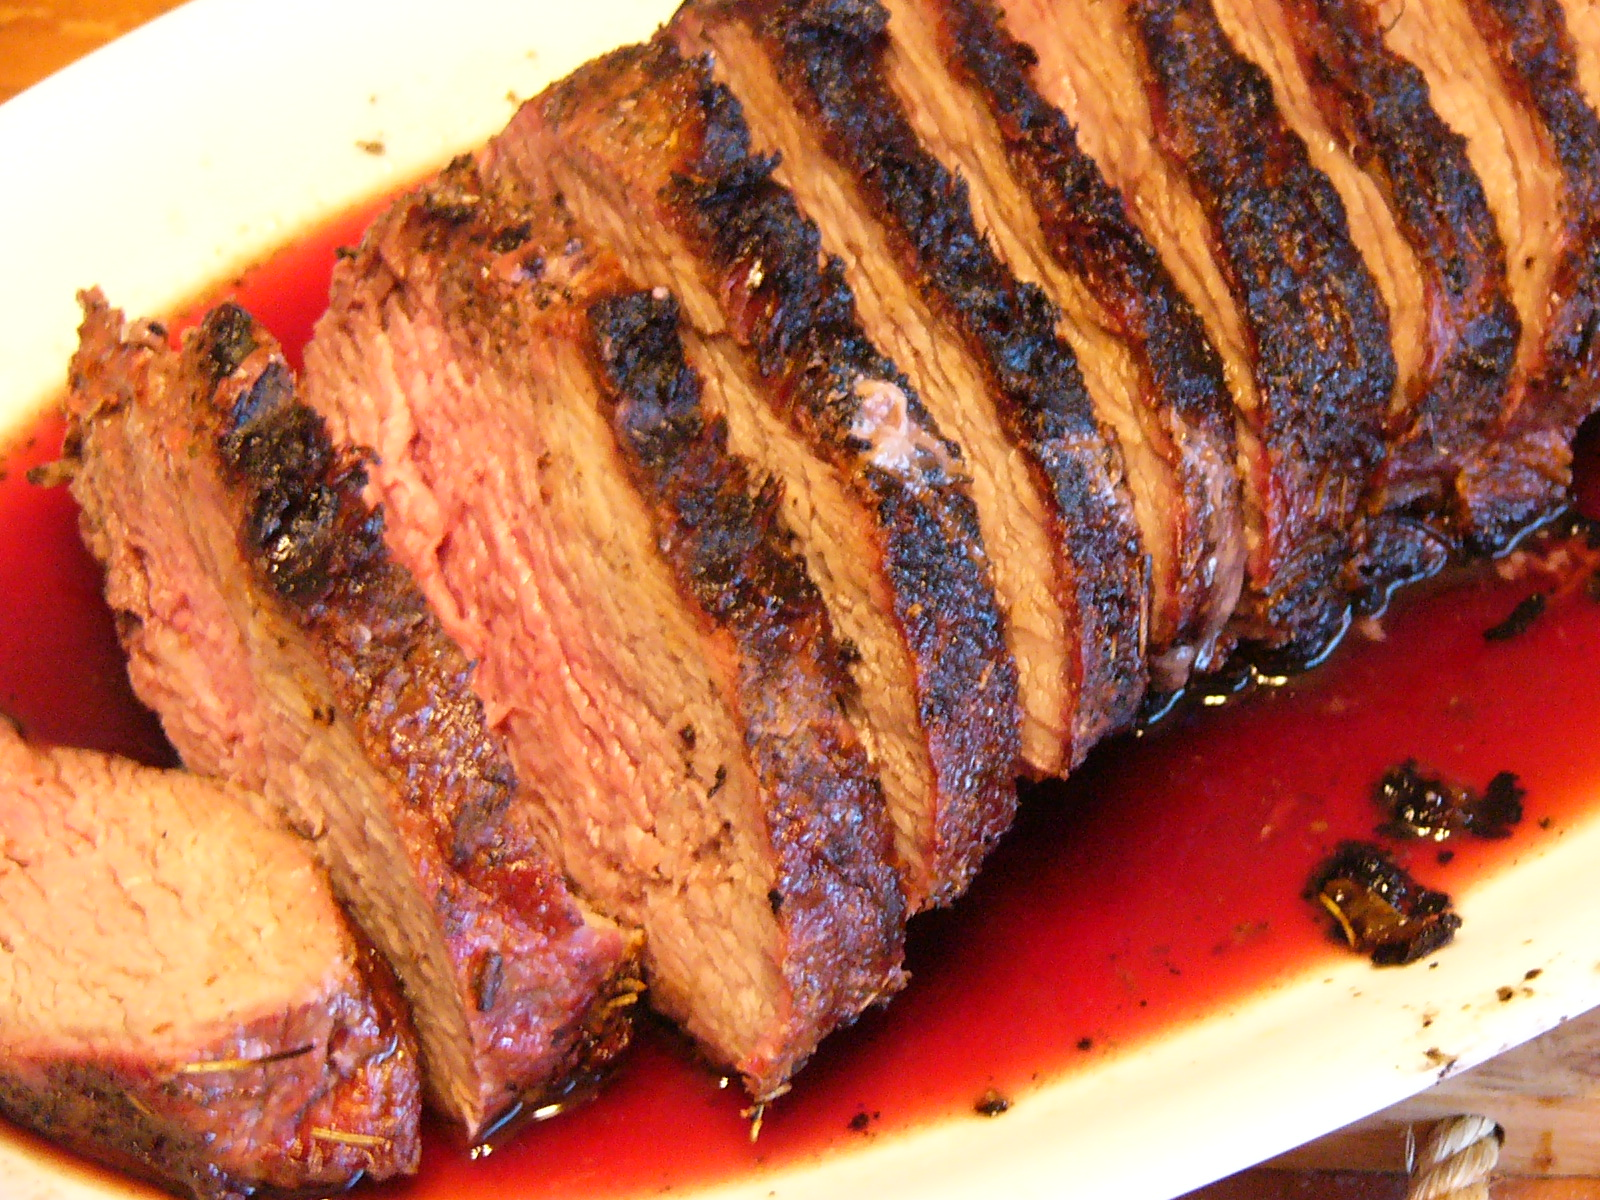 ... it click it grilled tri tip steak w black argentine grilled tri tip